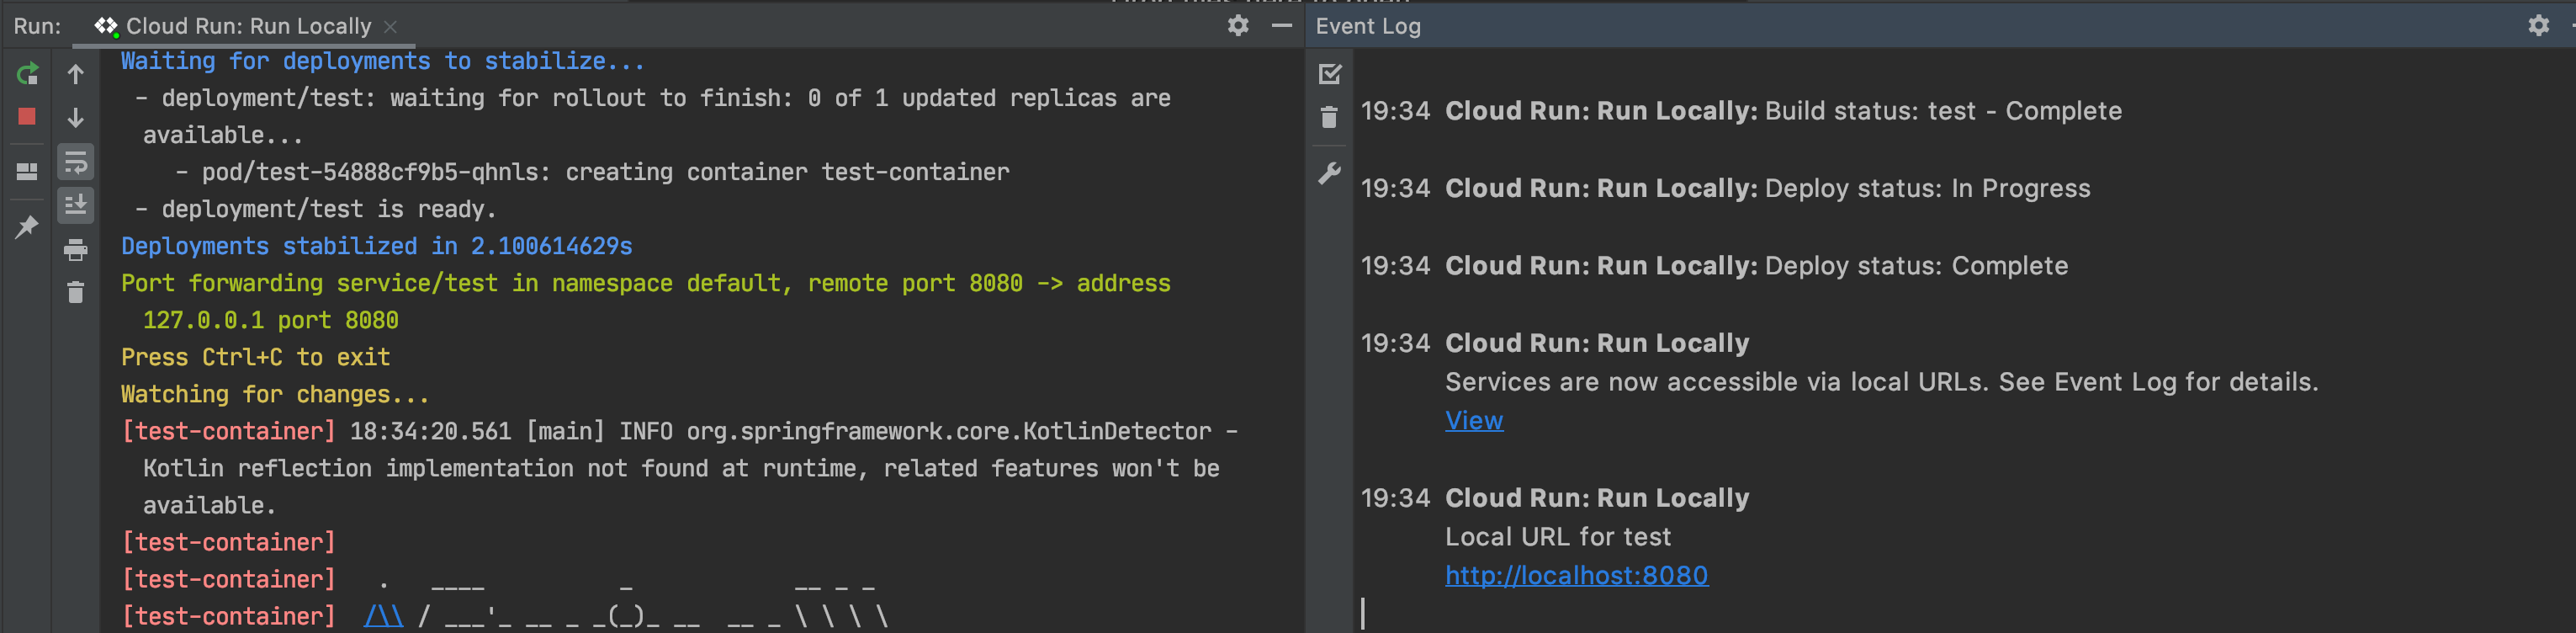 Event log with successful deployment notification and URL to preview your service